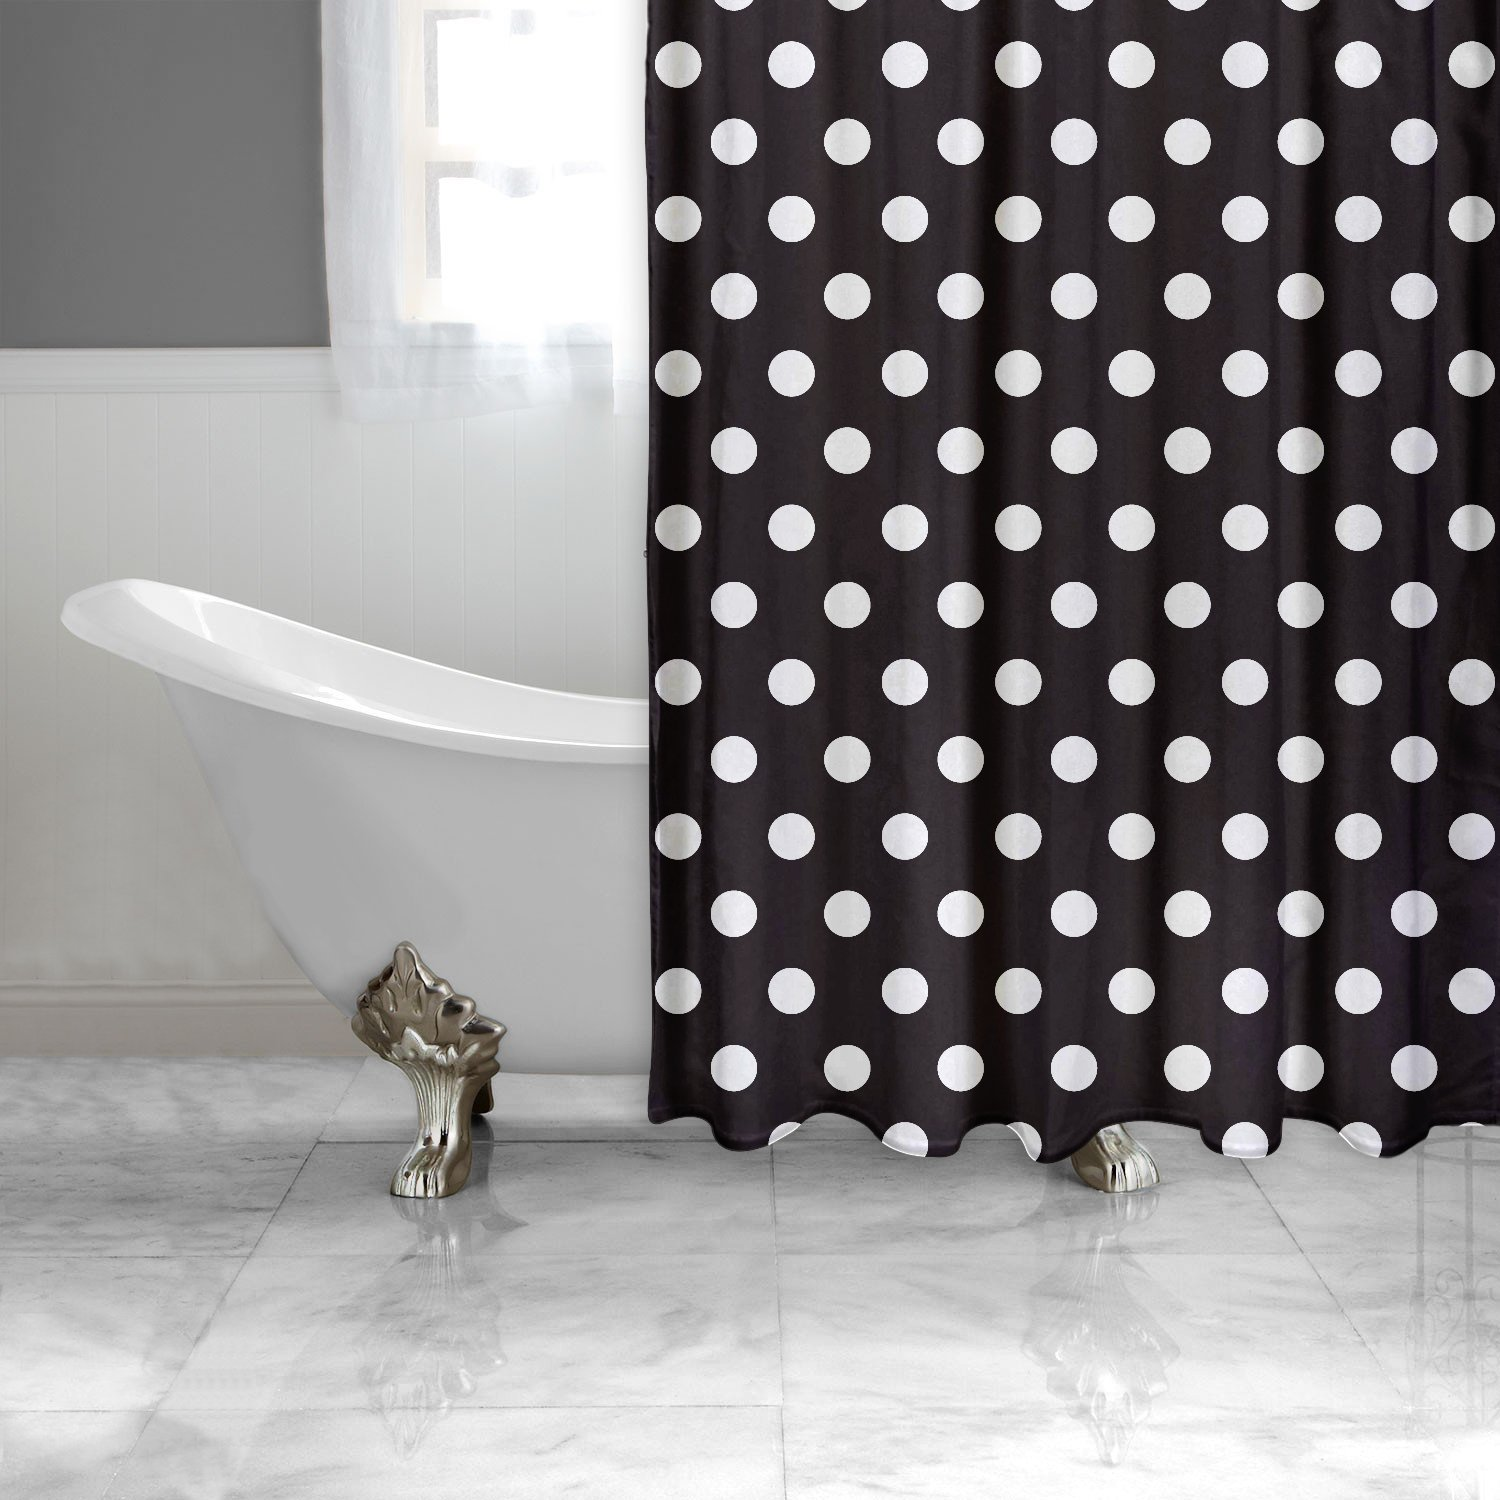 Amazon.com: Shower Curtain HQ - Black and White Polka Dot Shower ...